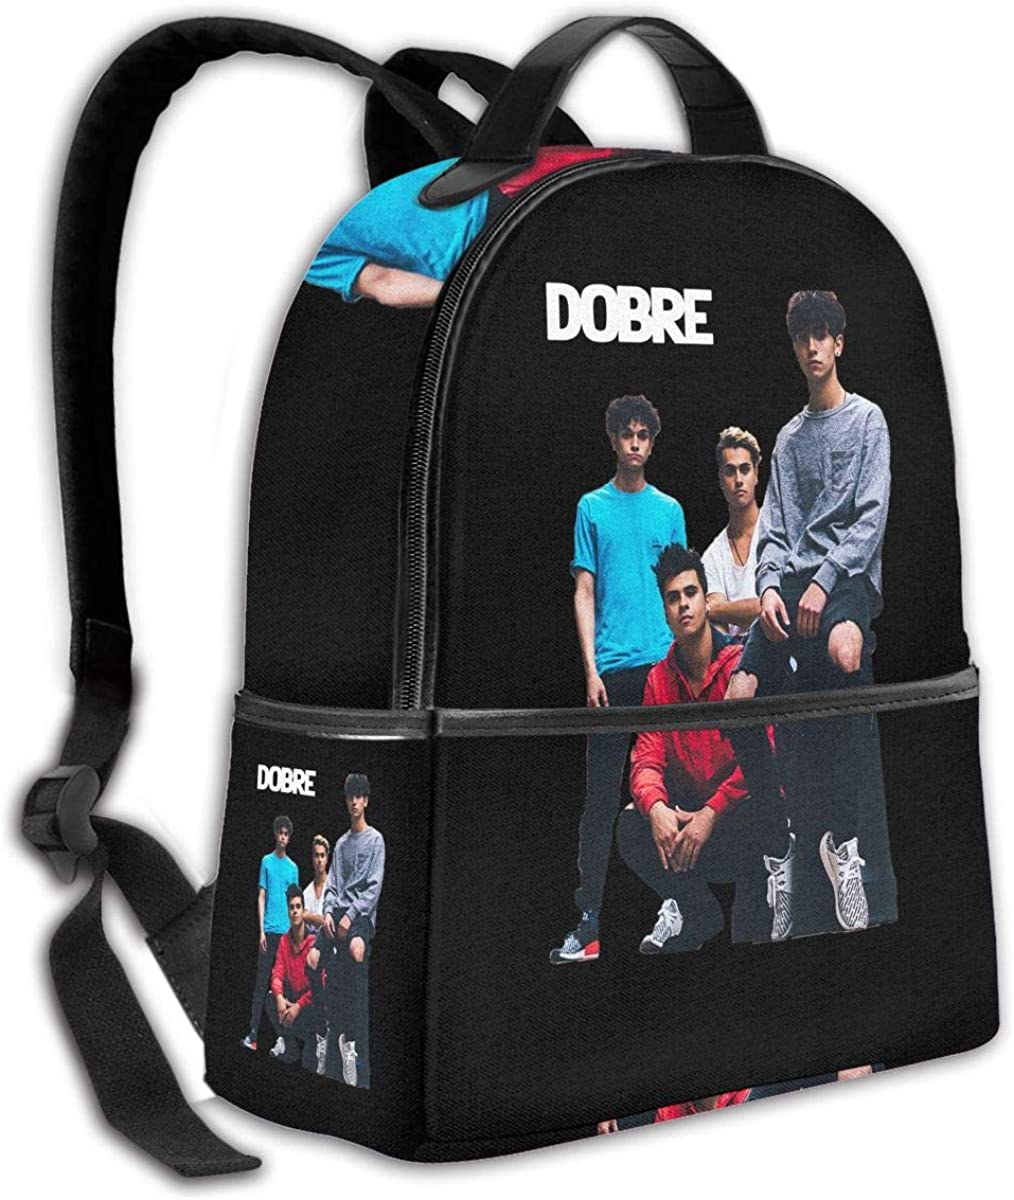 PROTHING Dobre Brothers Merch Fashion Backpack Laptop School Bag for Kids